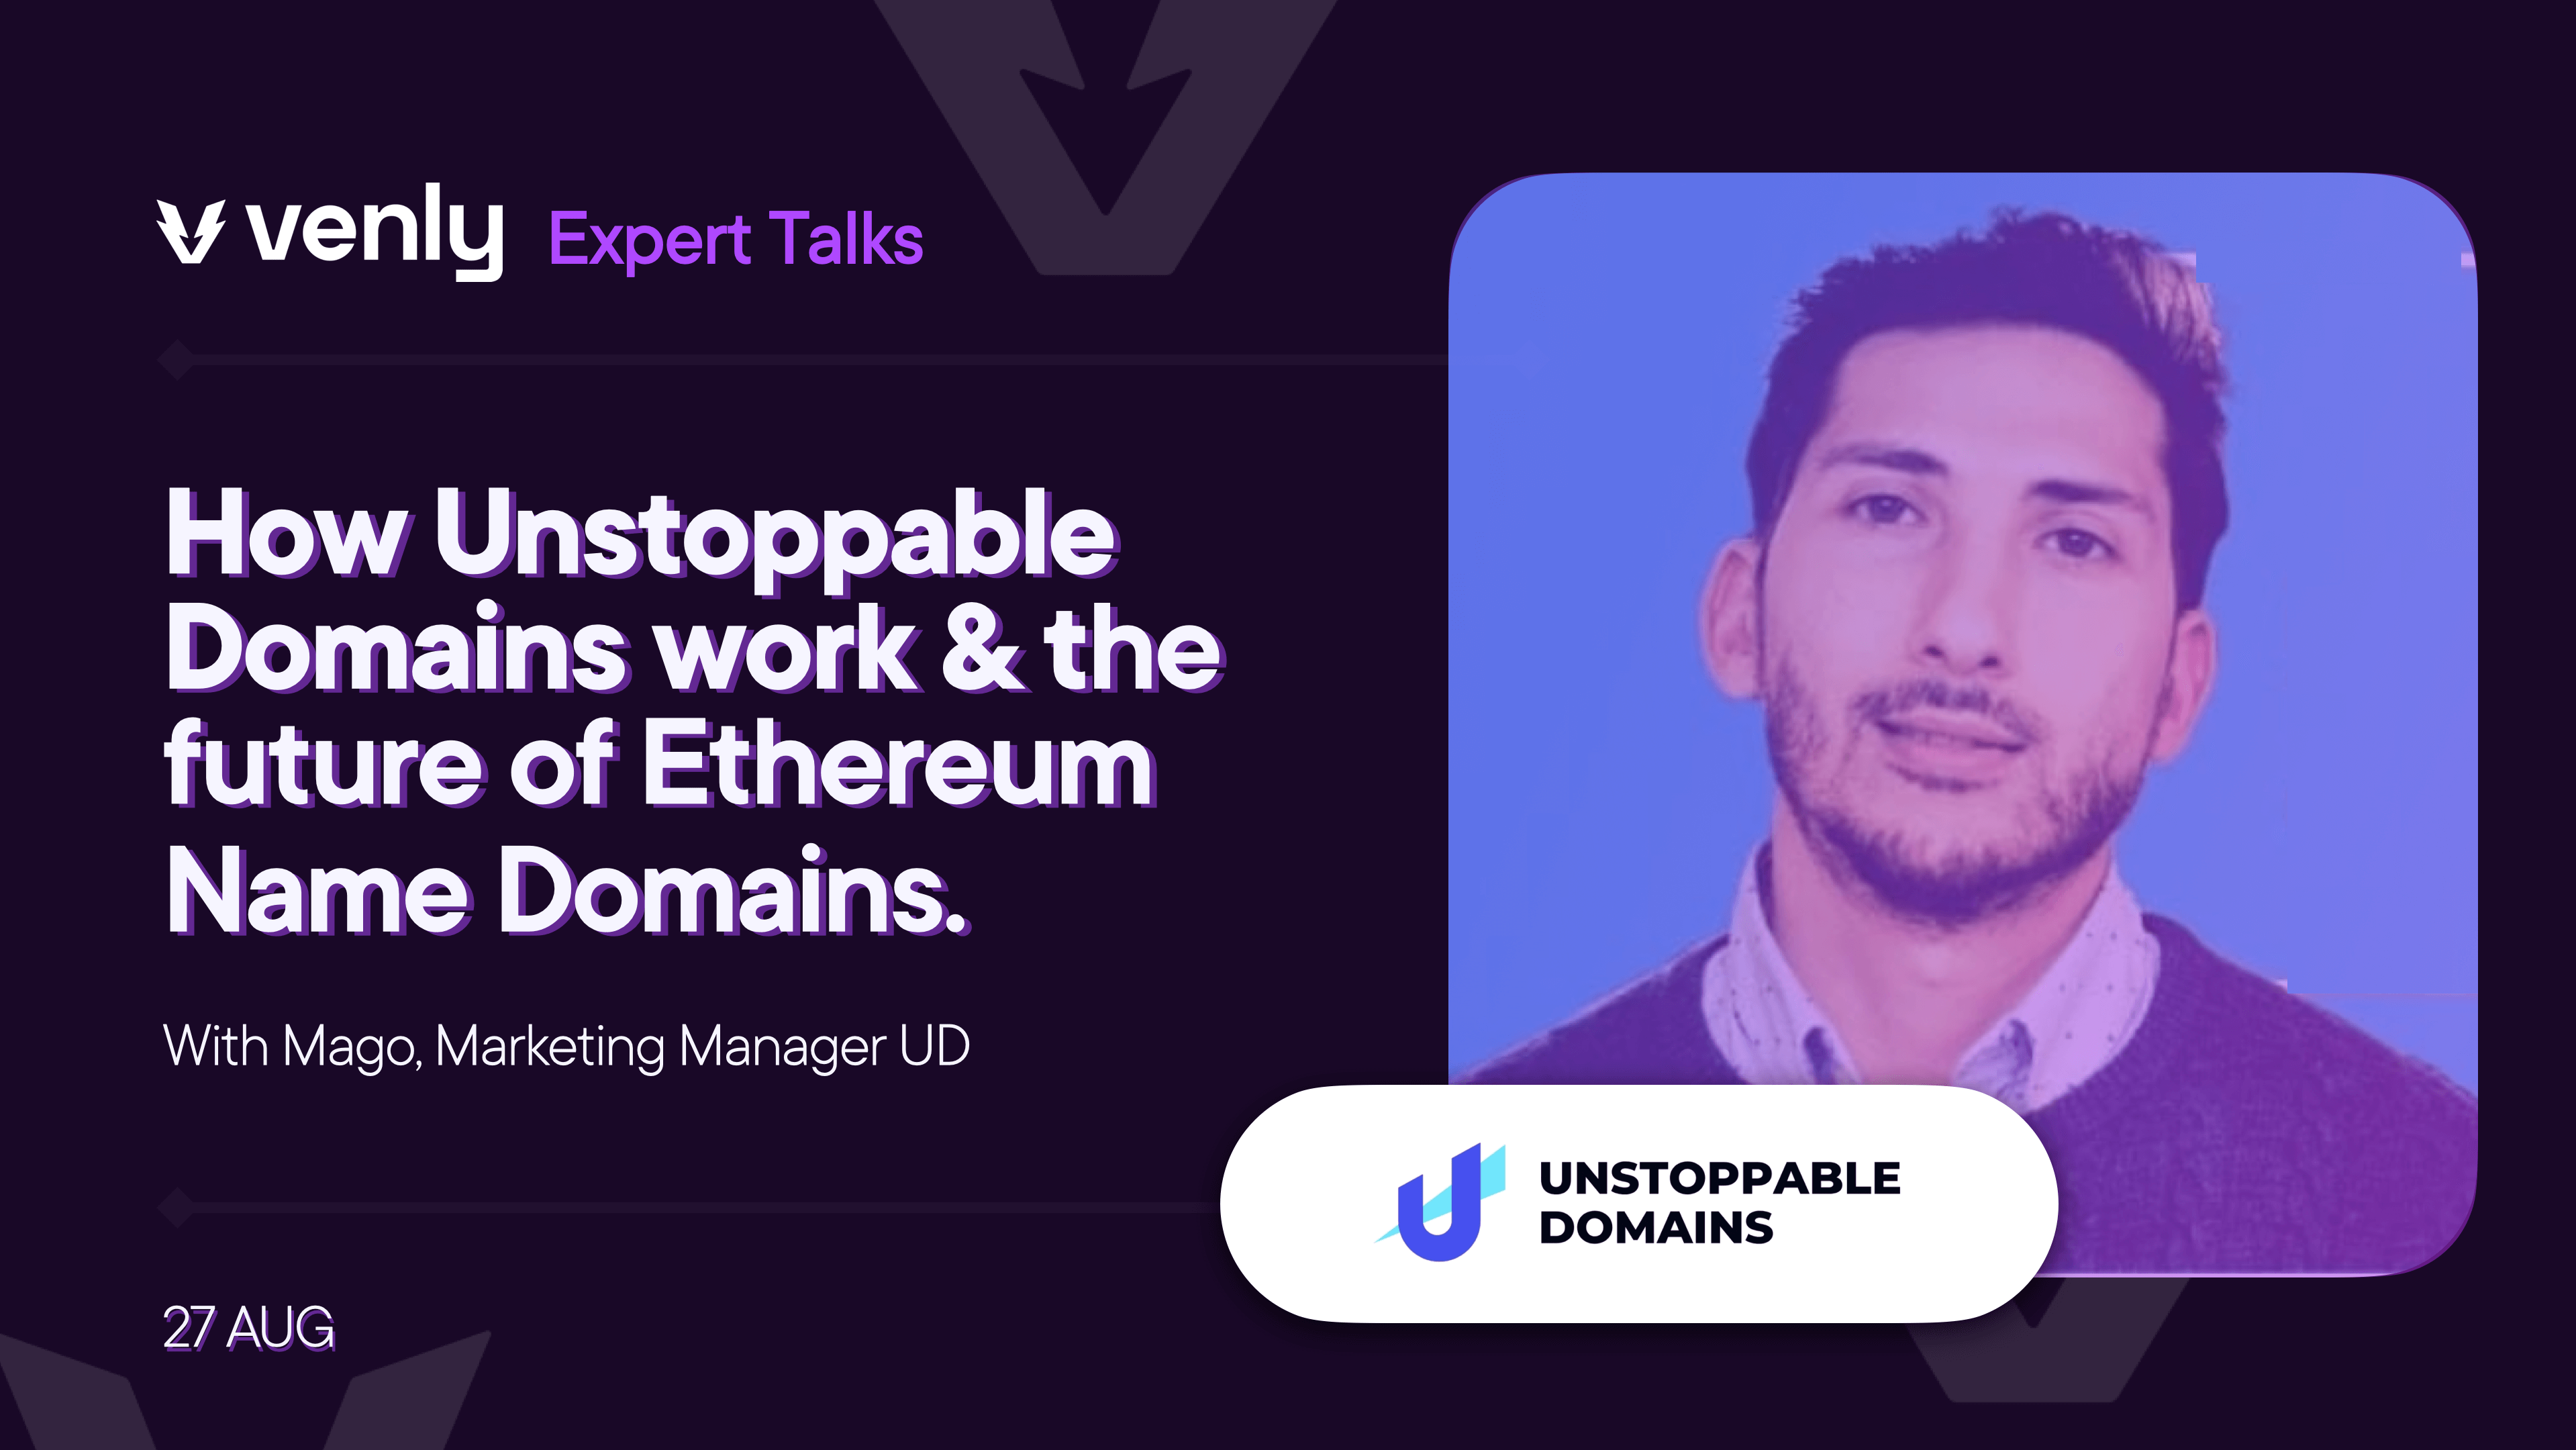 Venly Expert Talks: The future of ENS (Ethereum Name Services), with Unstoppable Domains